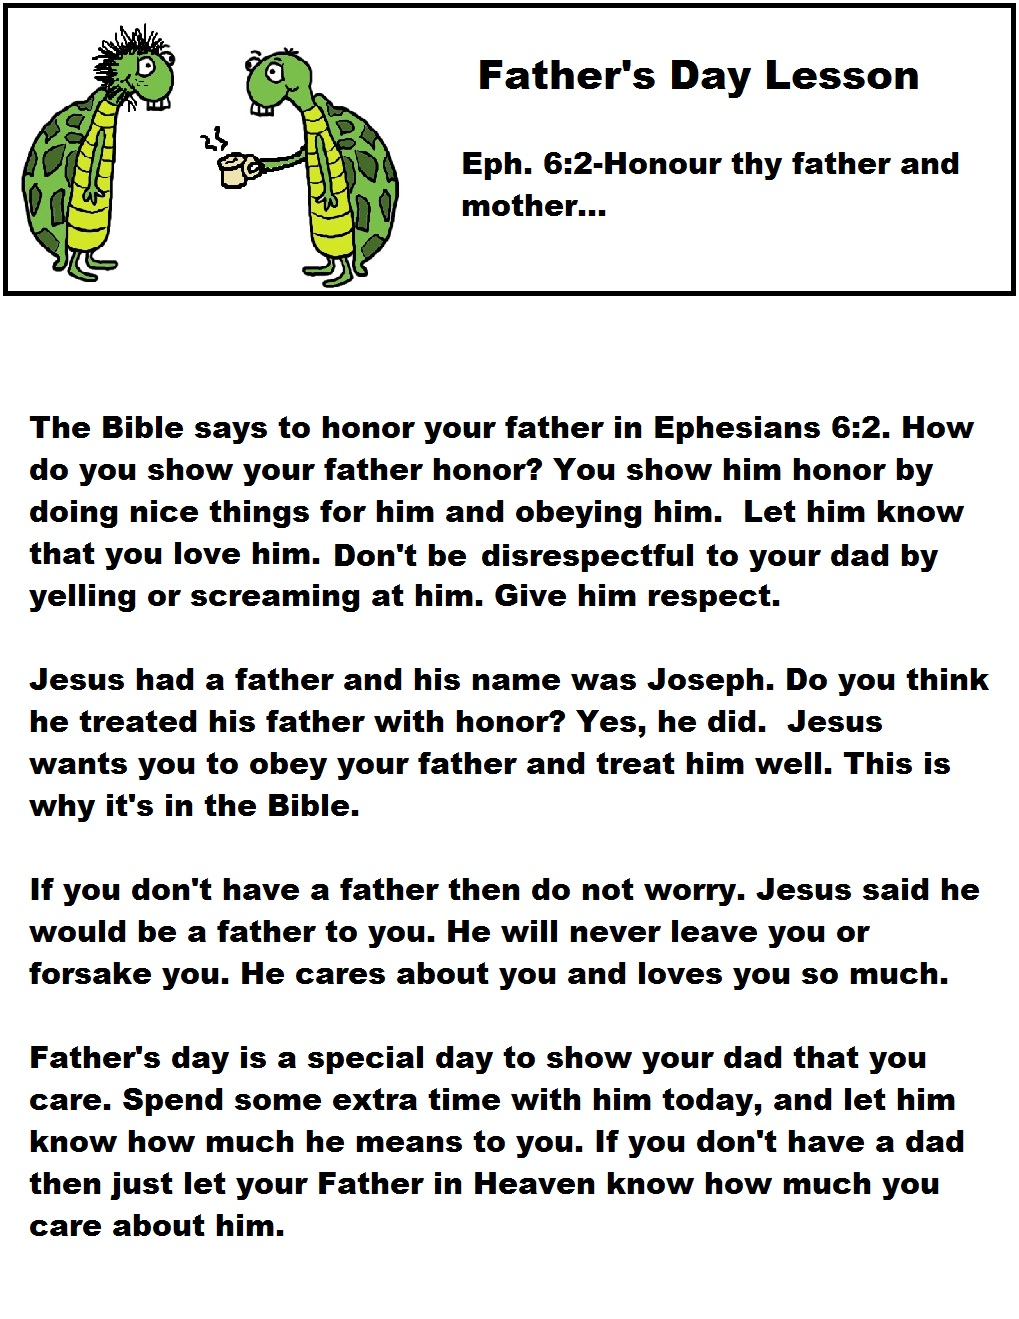 Print this father s day sunday school lesson out for the kids it has a